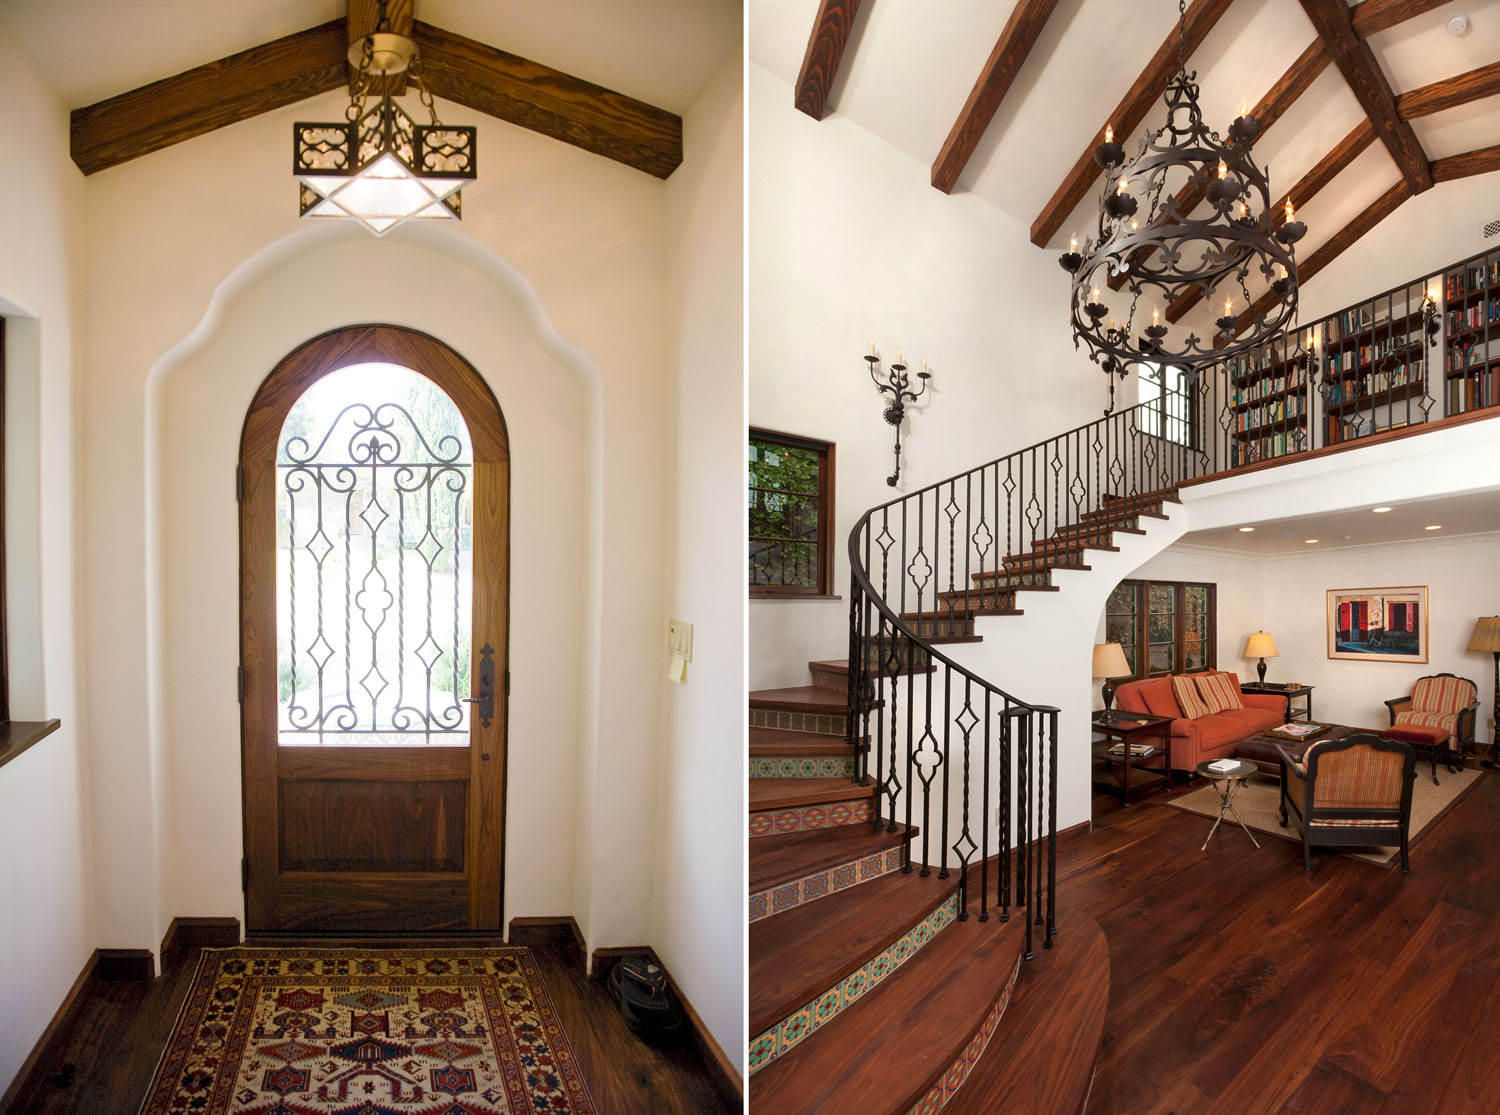 02-Spanish-Style-front-entry-tile-stair-risers-iron-railing-gary-drake-general-contractor.jpg